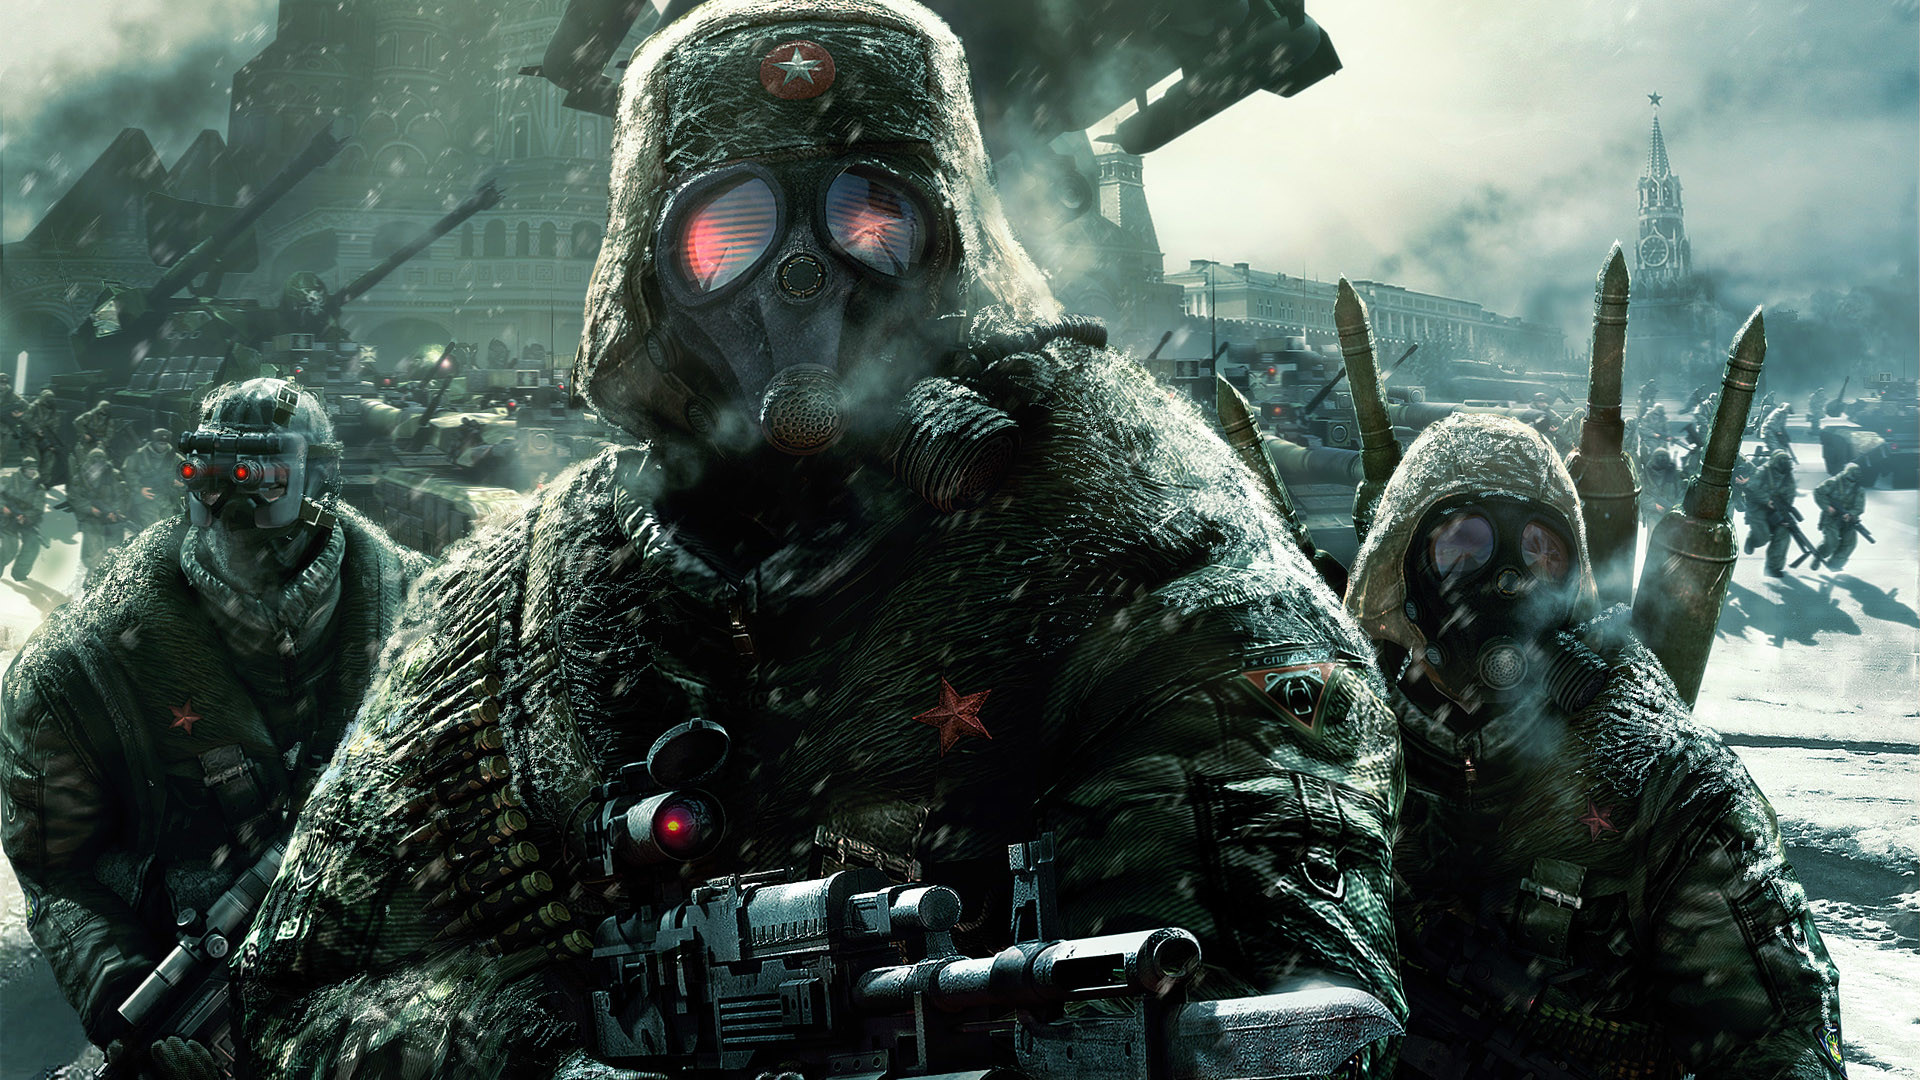 Resident Evil Operation Raccoon City Wallpaper 1080p 69 Images